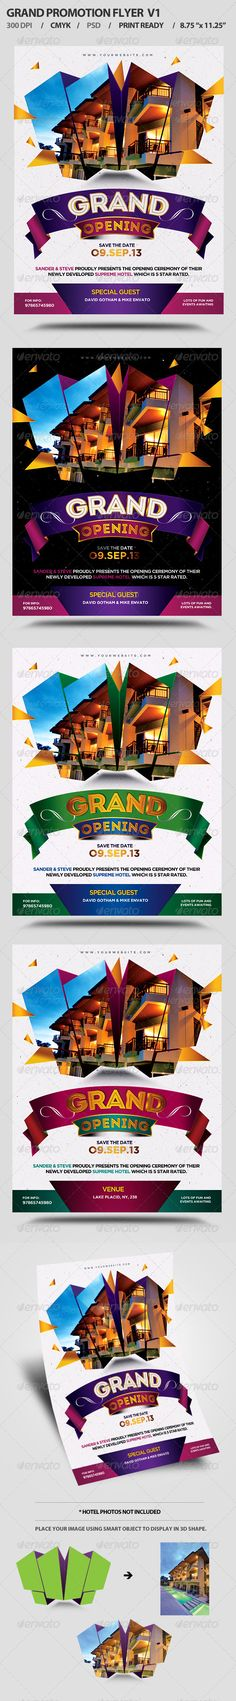 Grand Opening Event Flyer Design Template V1 - Events Flyers Design Template PSD. Download here: https://graphicriver.net/item/grand-opening-event-flyer-v1/5494208?ref=yinkira